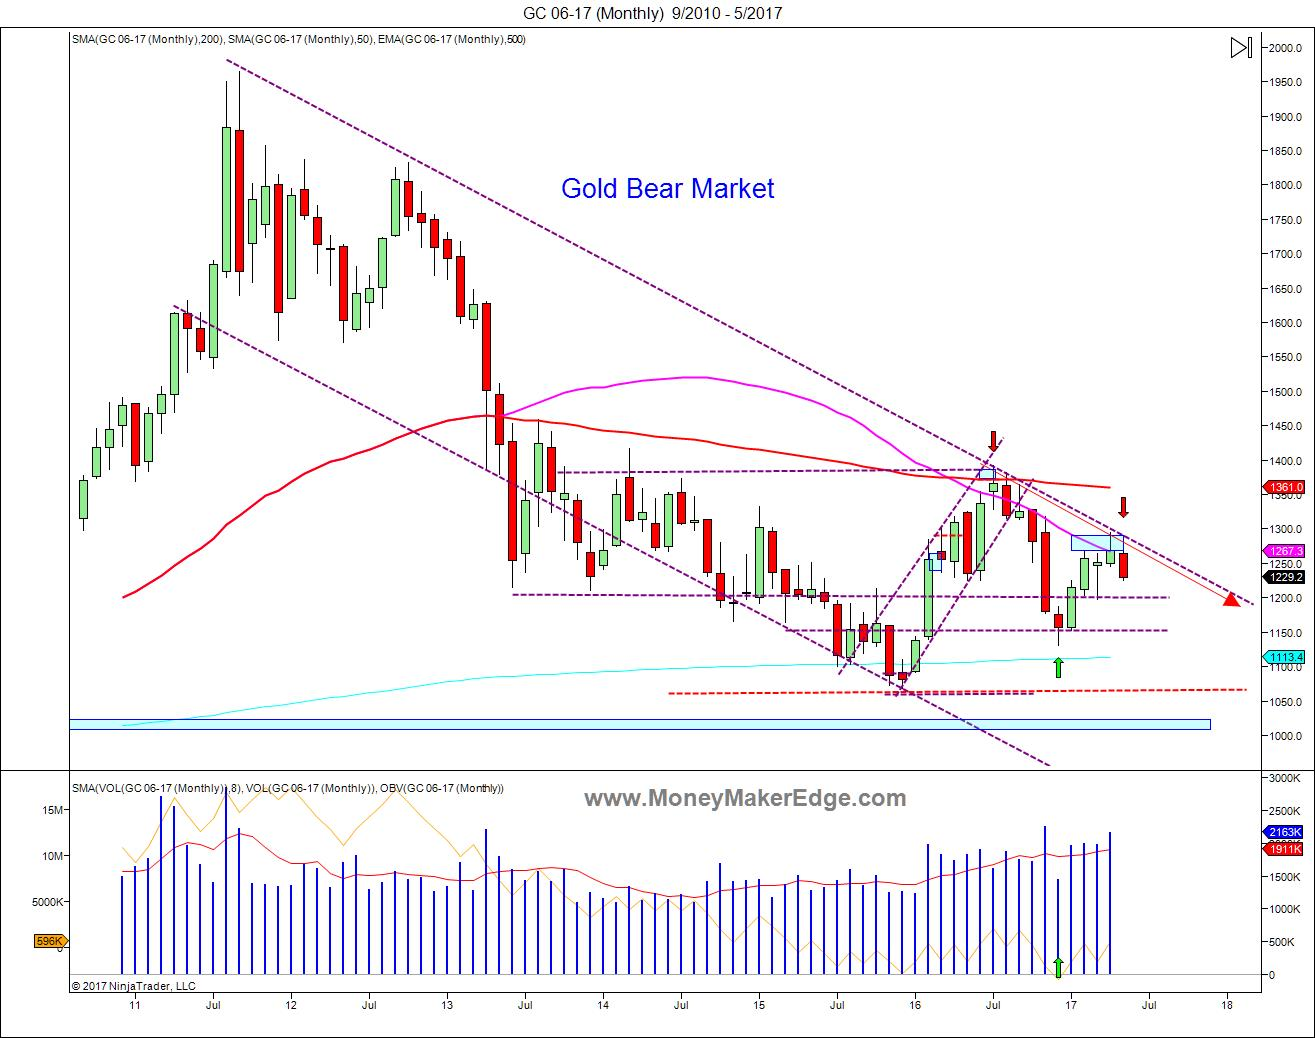 Gold-Bear-Market-Monthly-Chart.jpg